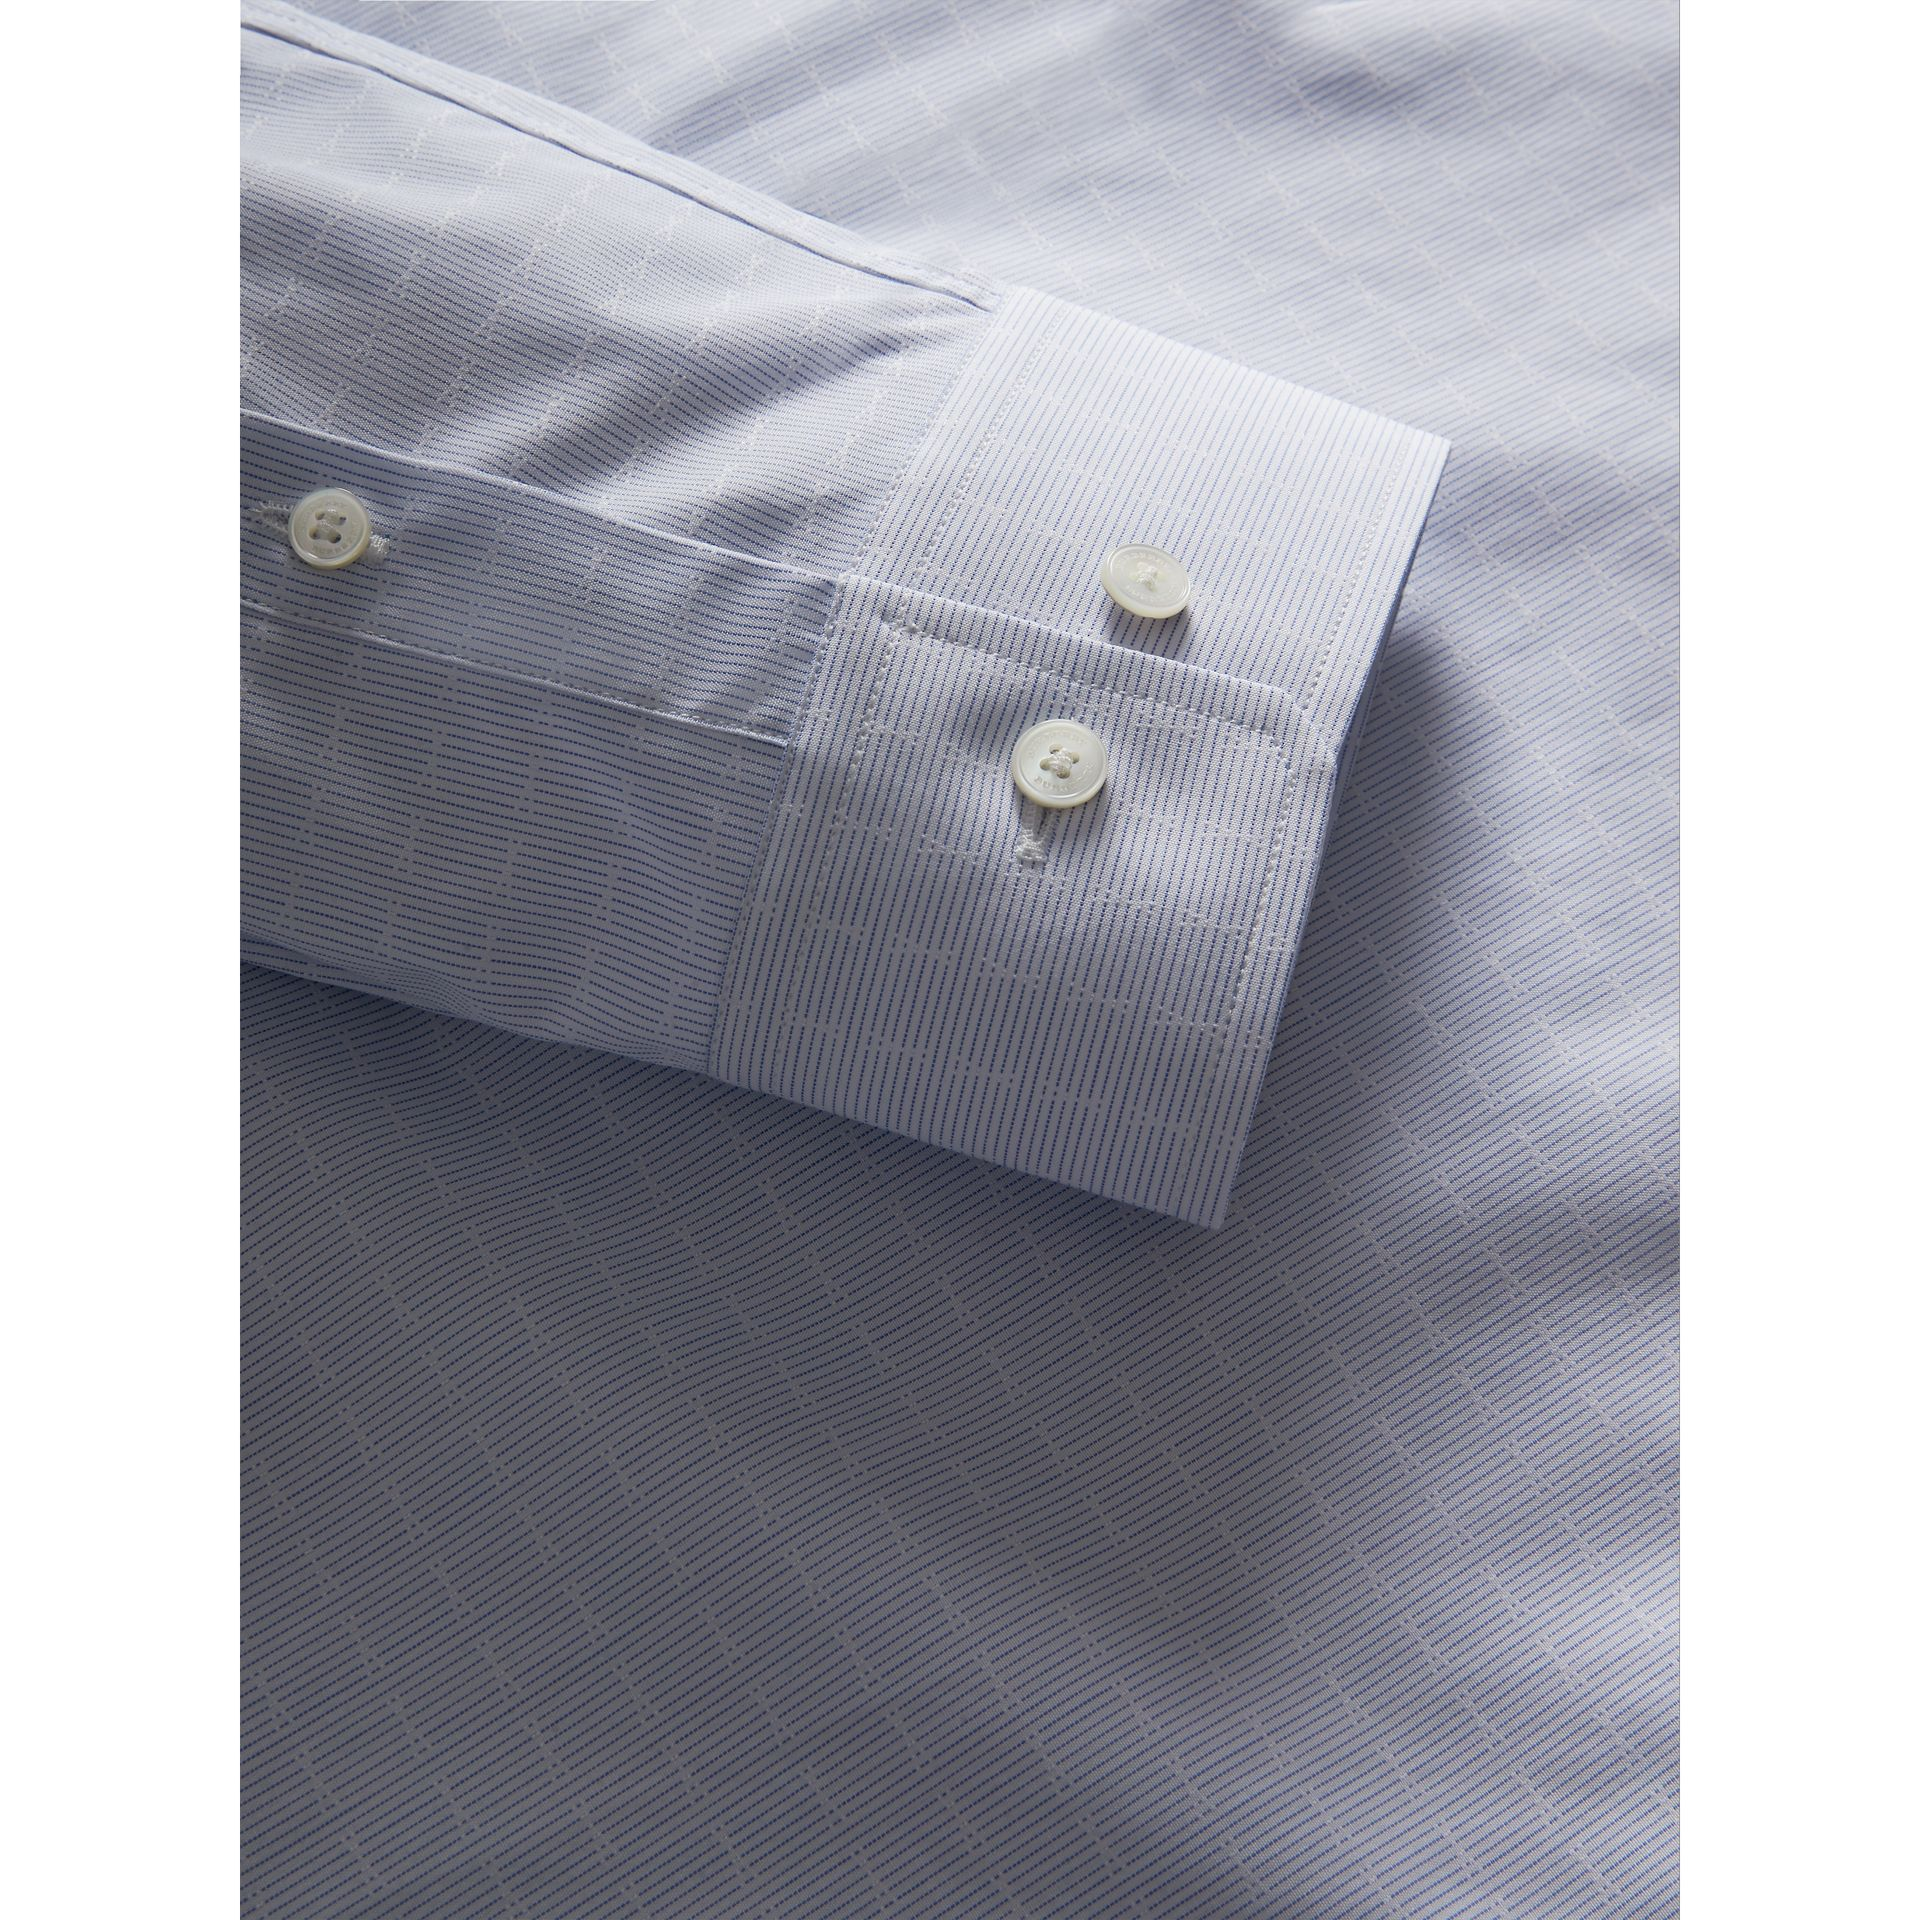 Modern Fit Geometric Dobby Cotton Shirt in Pale Blue - Men | Burberry - gallery image 1